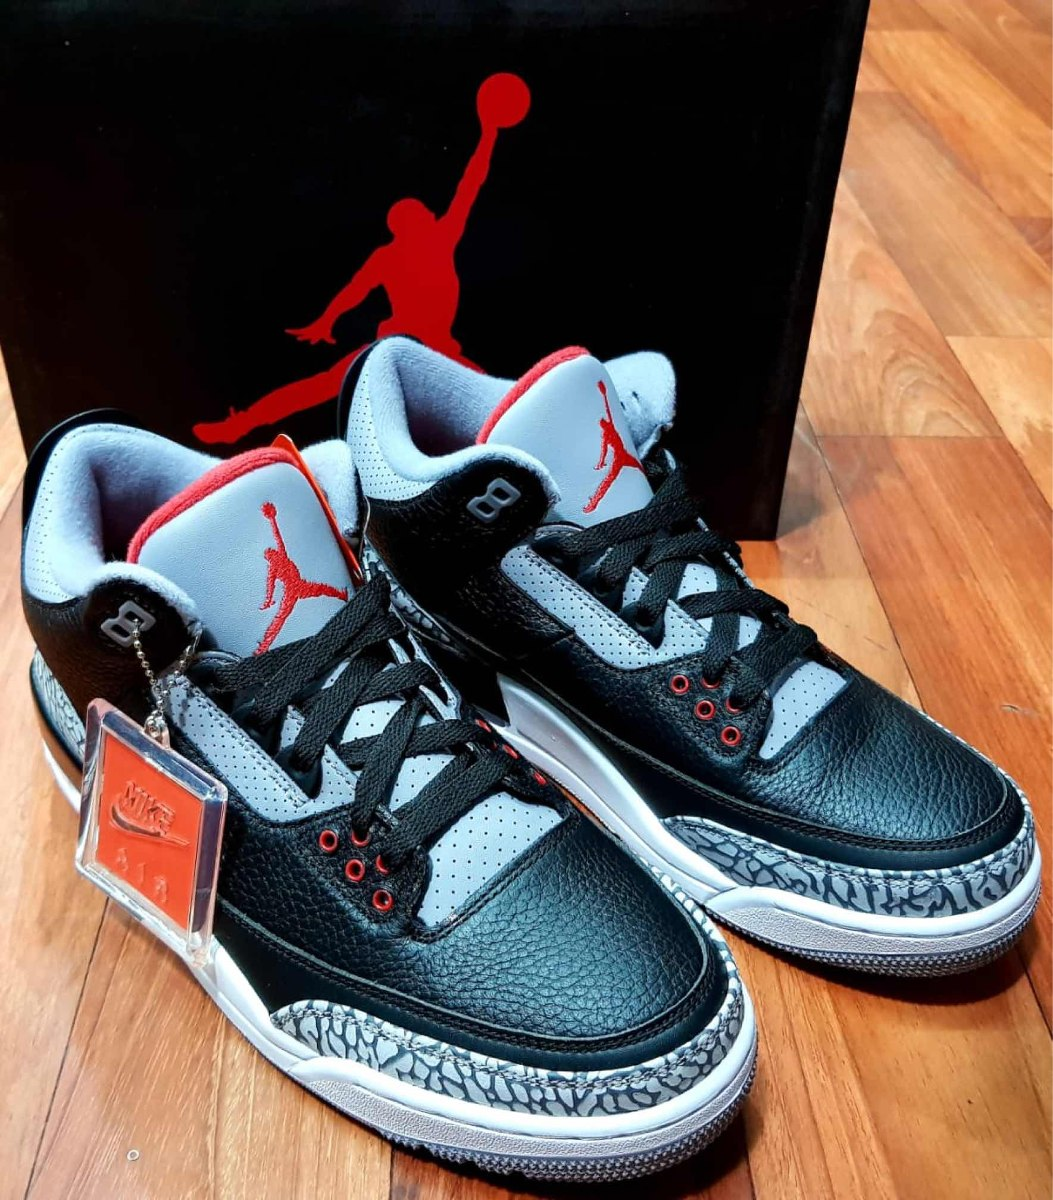 reputable site 7fdaa d5f0c Air Jordan Retro 3 Black Cement Og Original